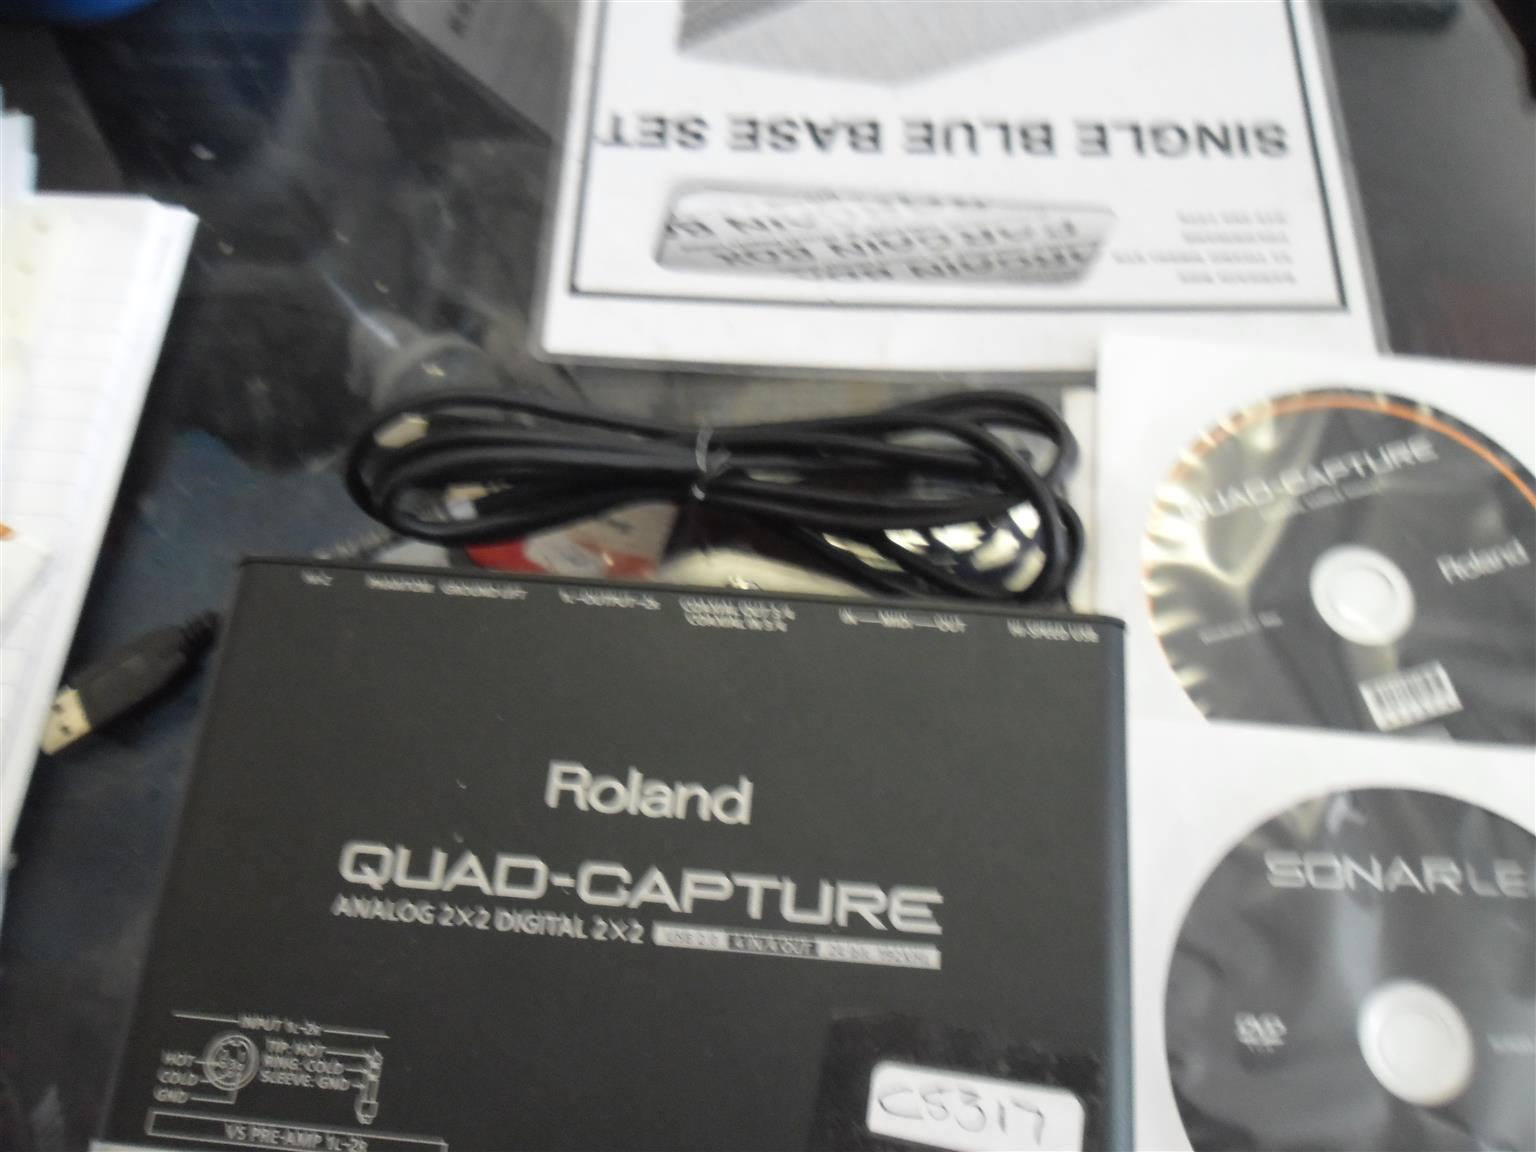 ROLAND QUAD-CAPTURE  ANALOG 2X2 DIGITAL